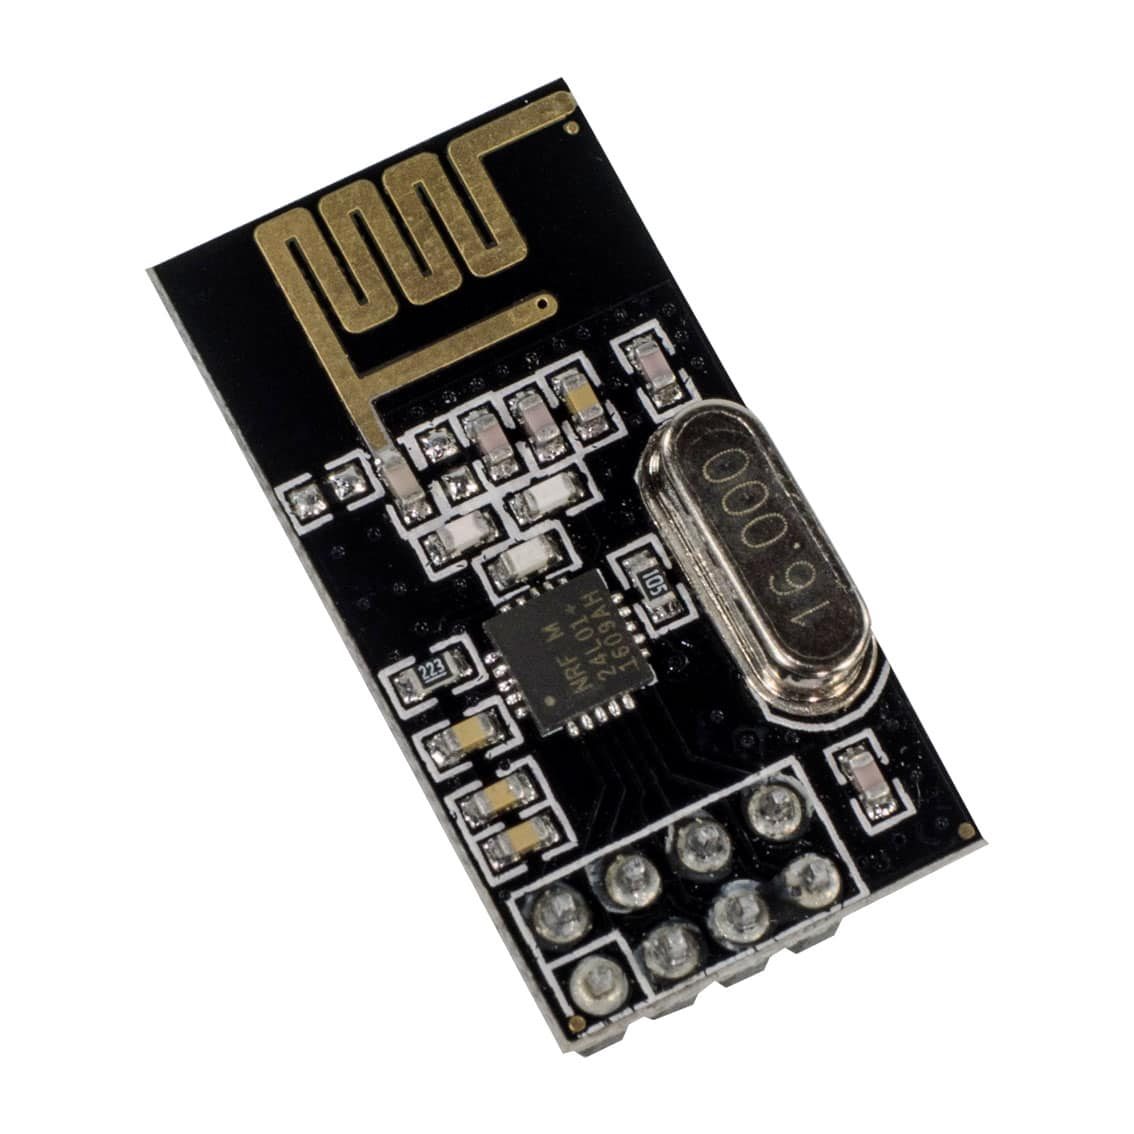 Nrf24l01 2 4ghz Wireless Radio Transceiver Module